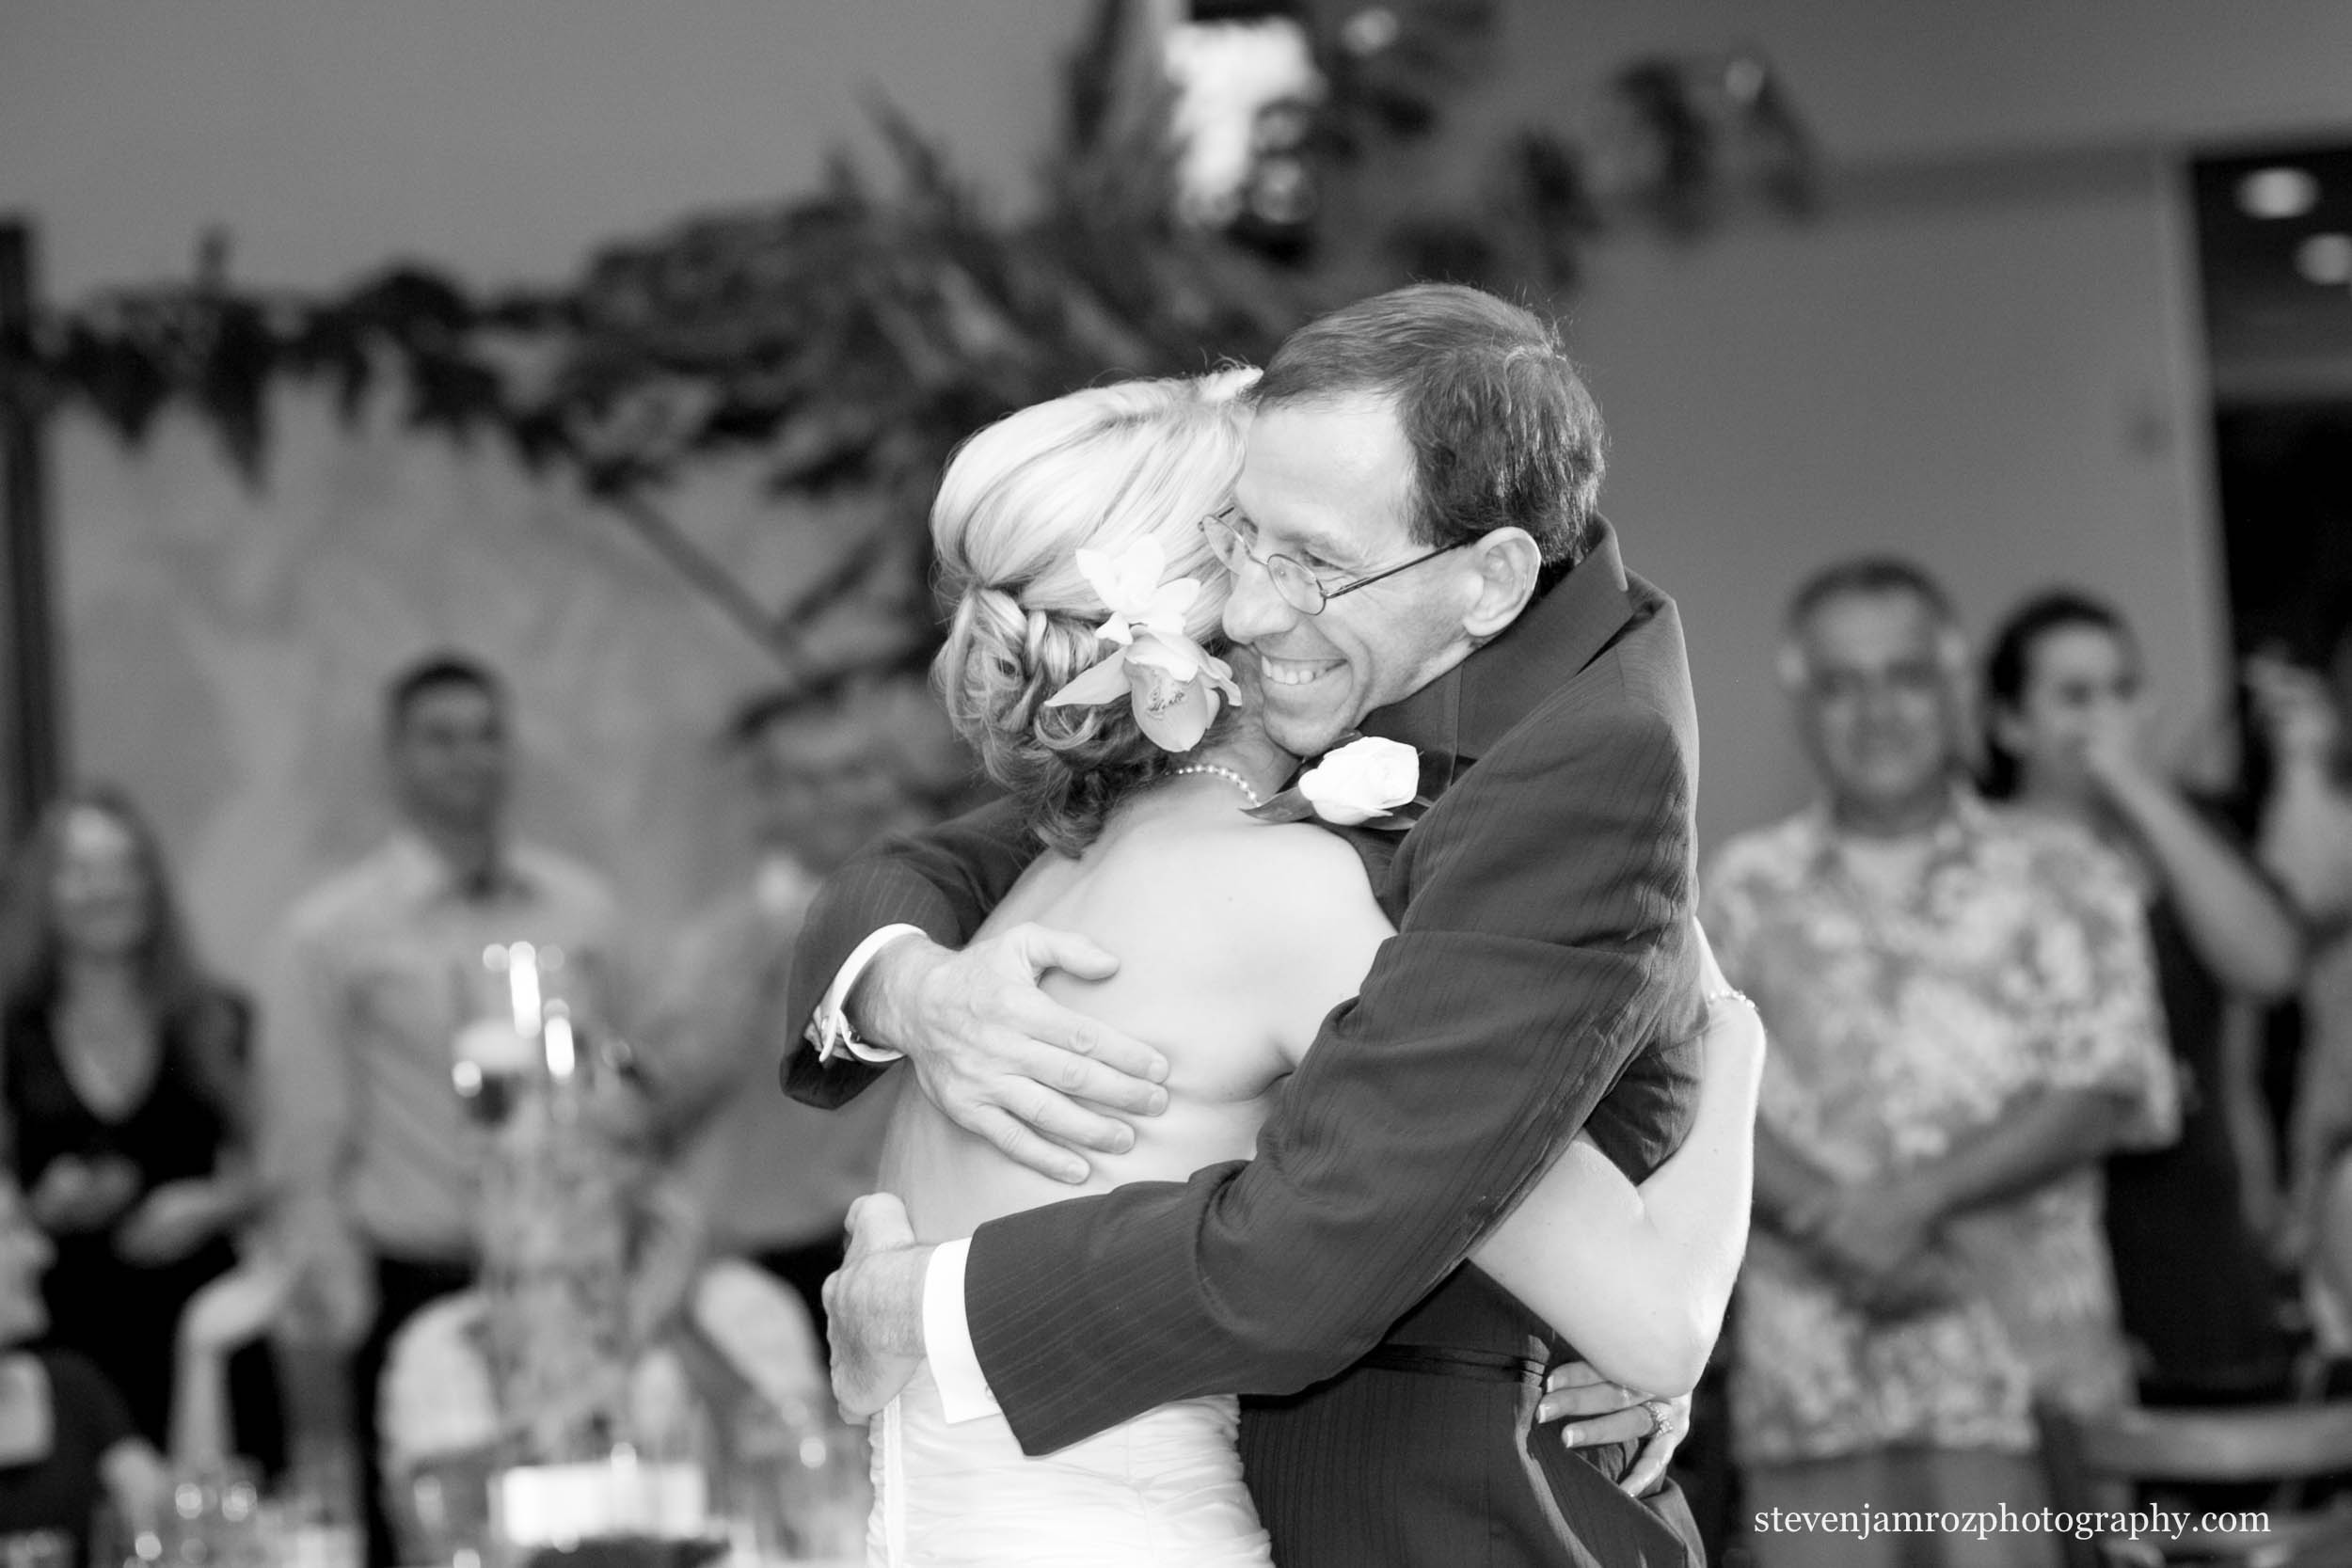 father-daughter-hug-first-dance-raleigh-wedding-photography-0928.jpg